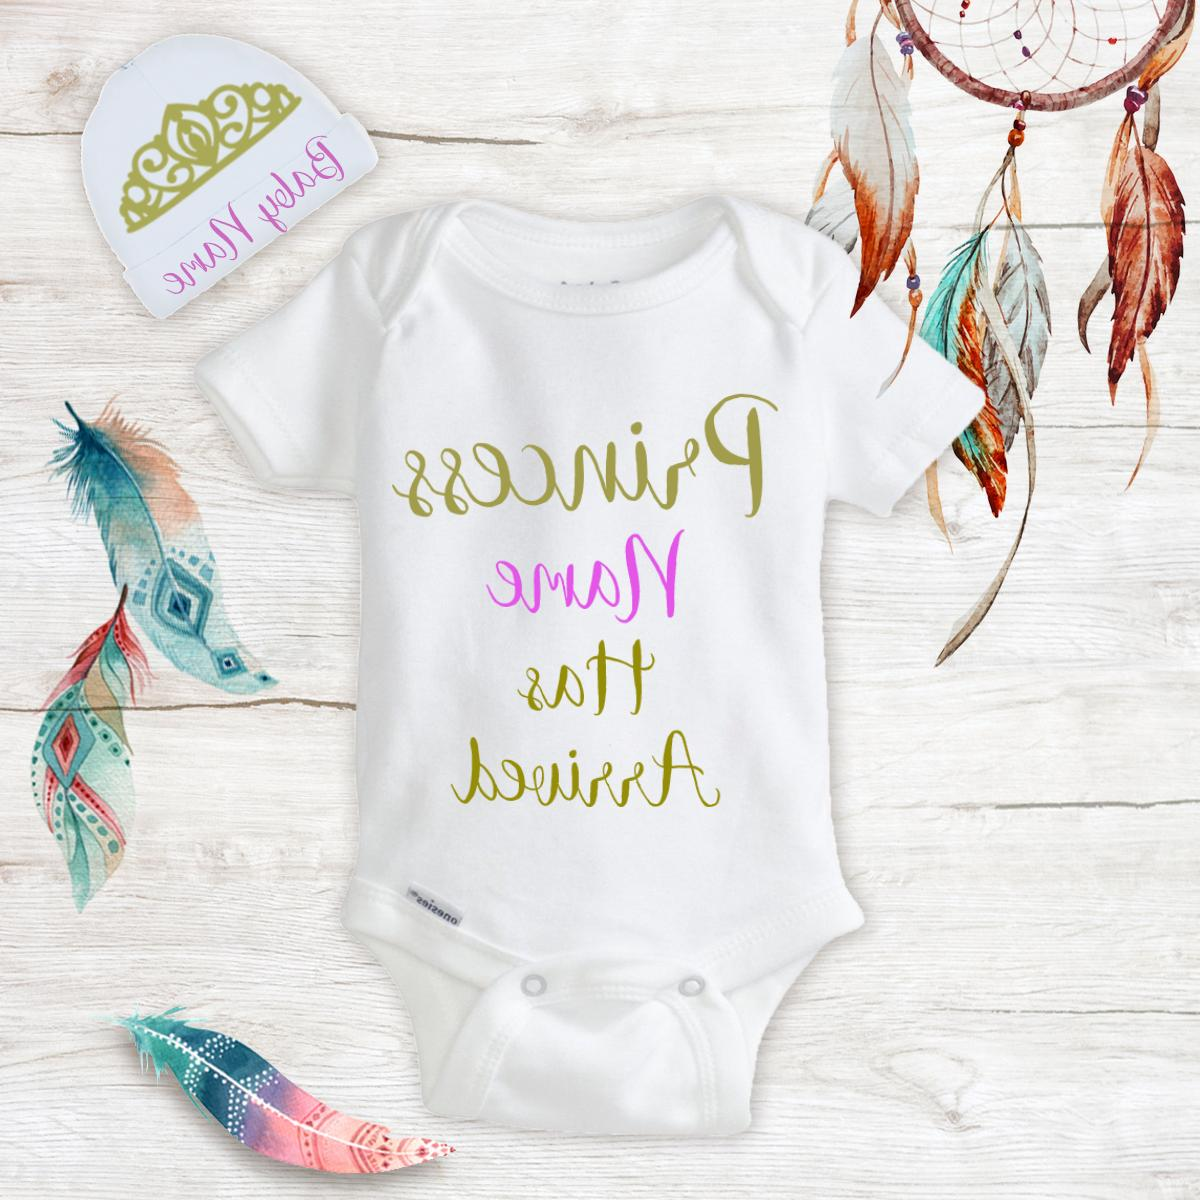 Personalized Name Princess Baby Girl Onesies & Hat Baby Show